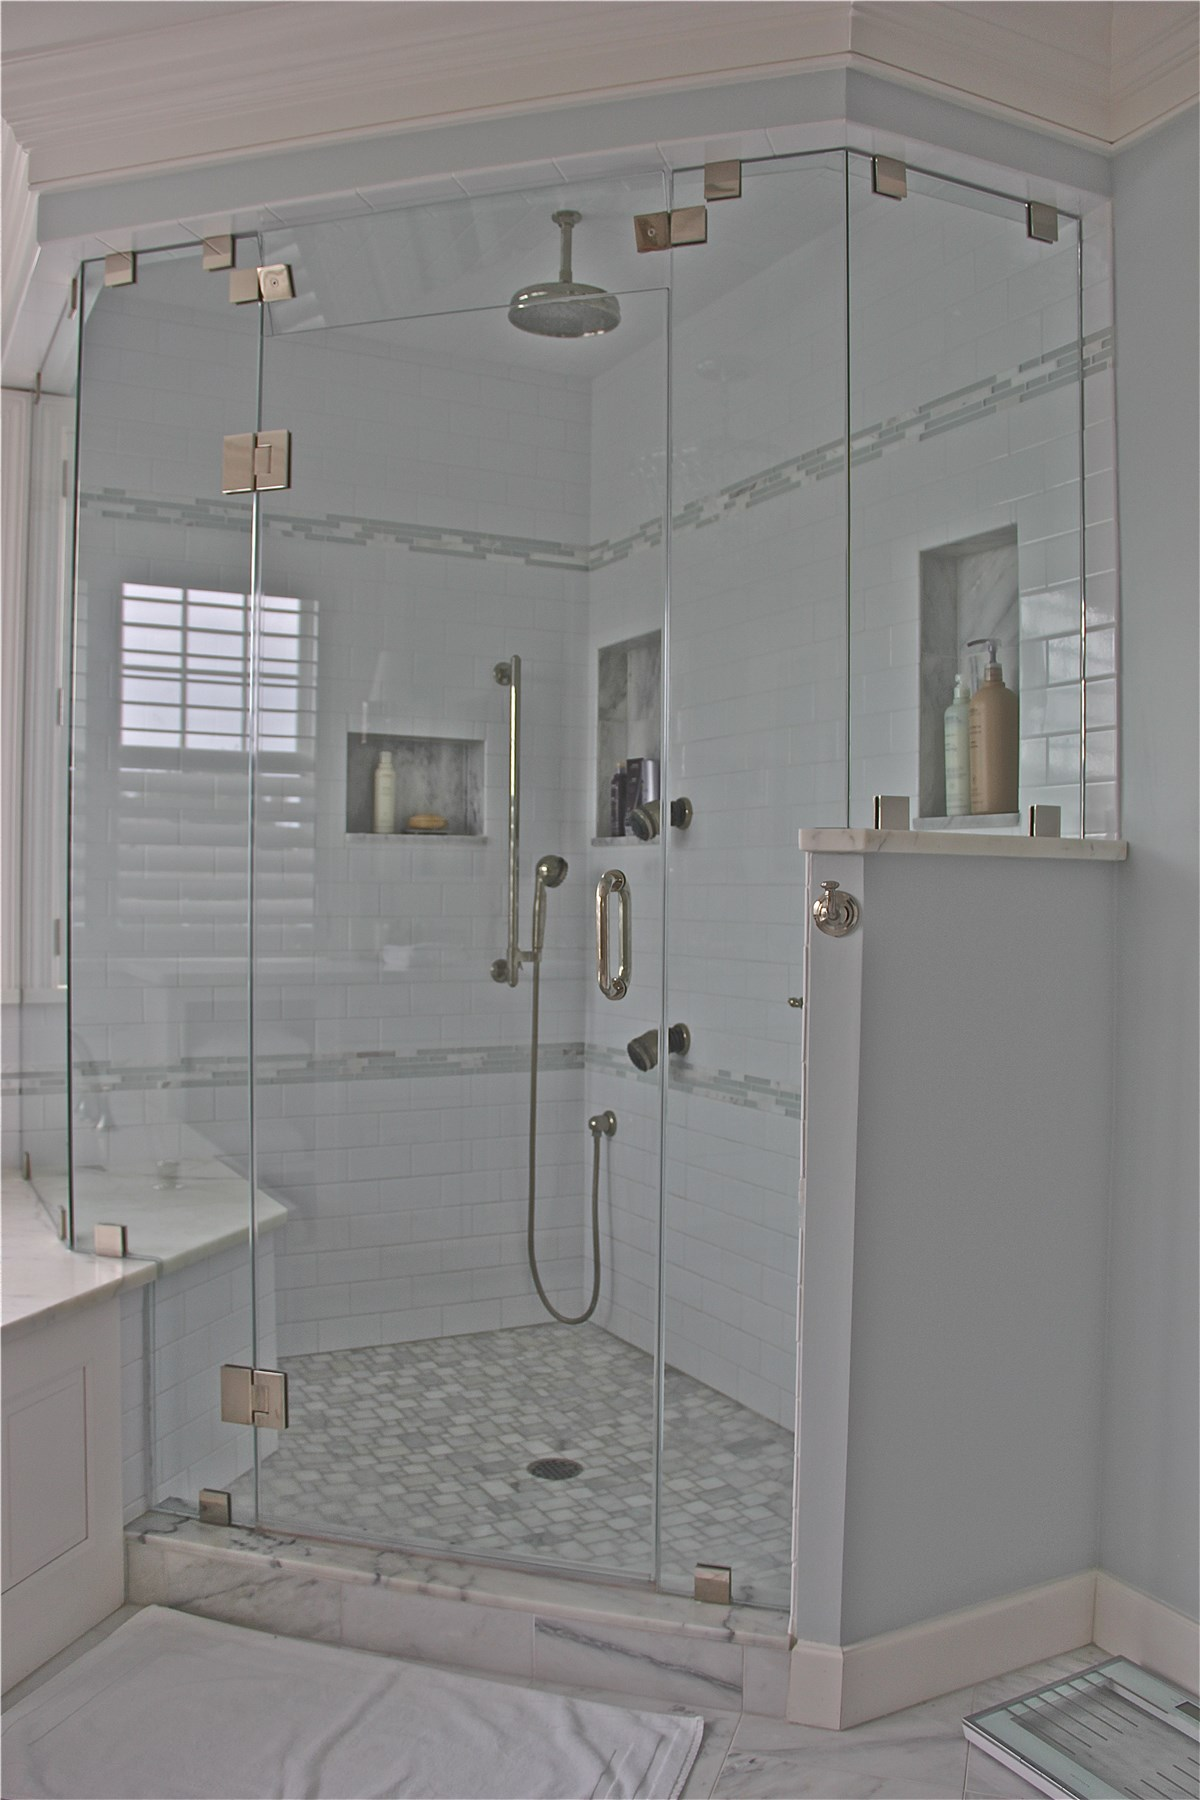 Bathroom Remodel Ct bathroom remodelers ct | bath remodeling contractors